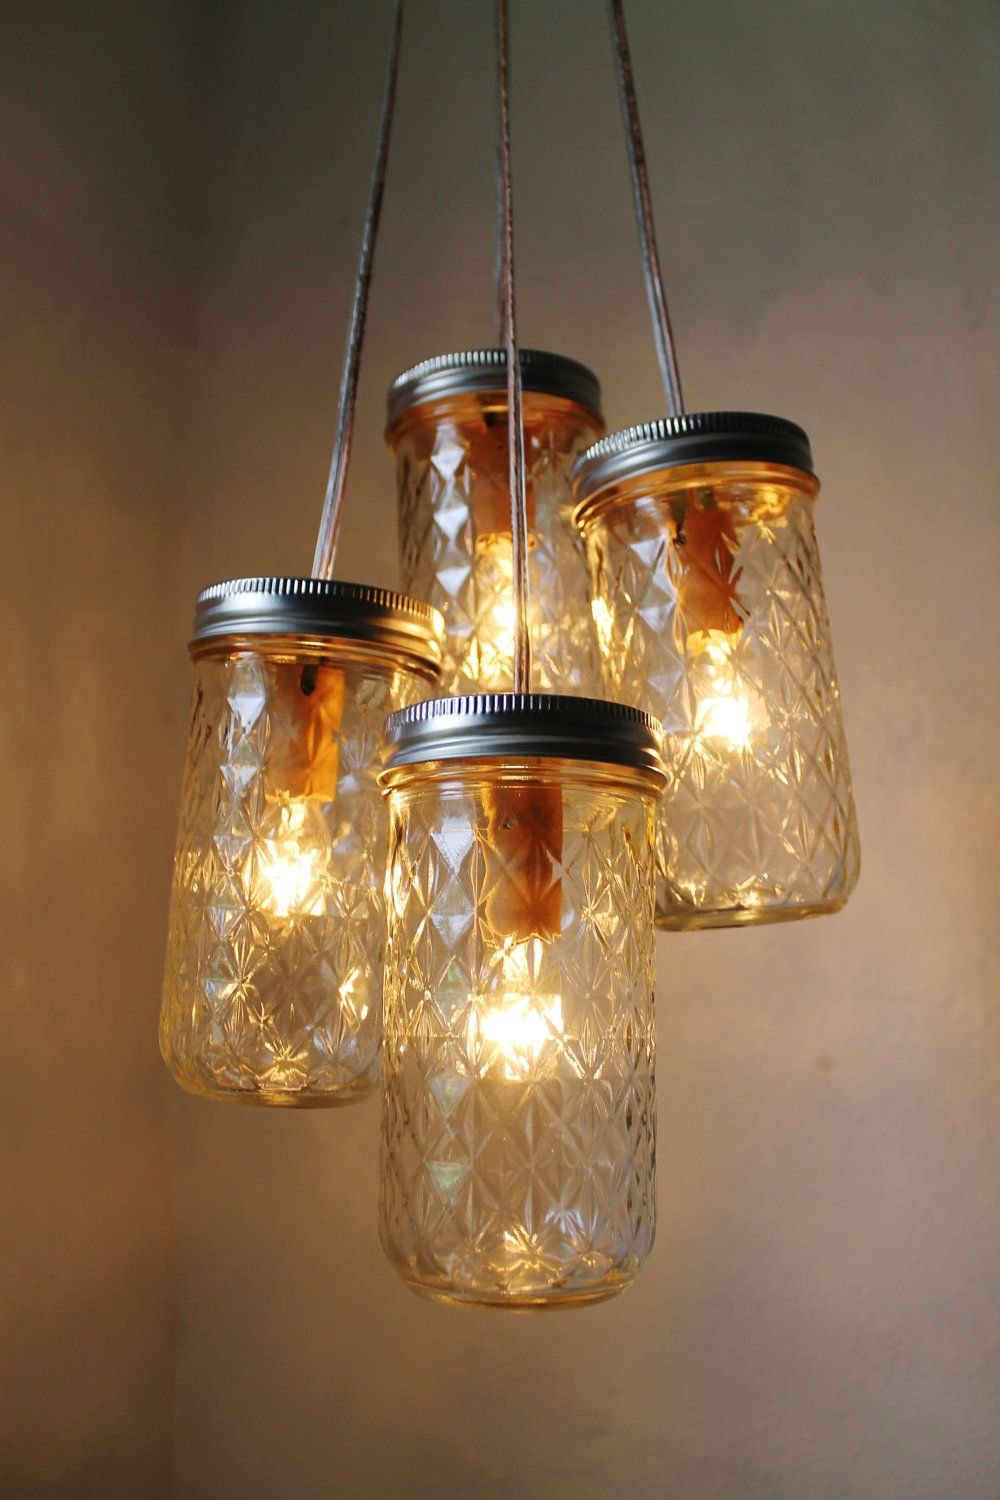 Firefly Dance Mason Jar Chandelier - 4 Quilted Pint Jars ... for Fireflies In A Jar Cover Photo  75tgx